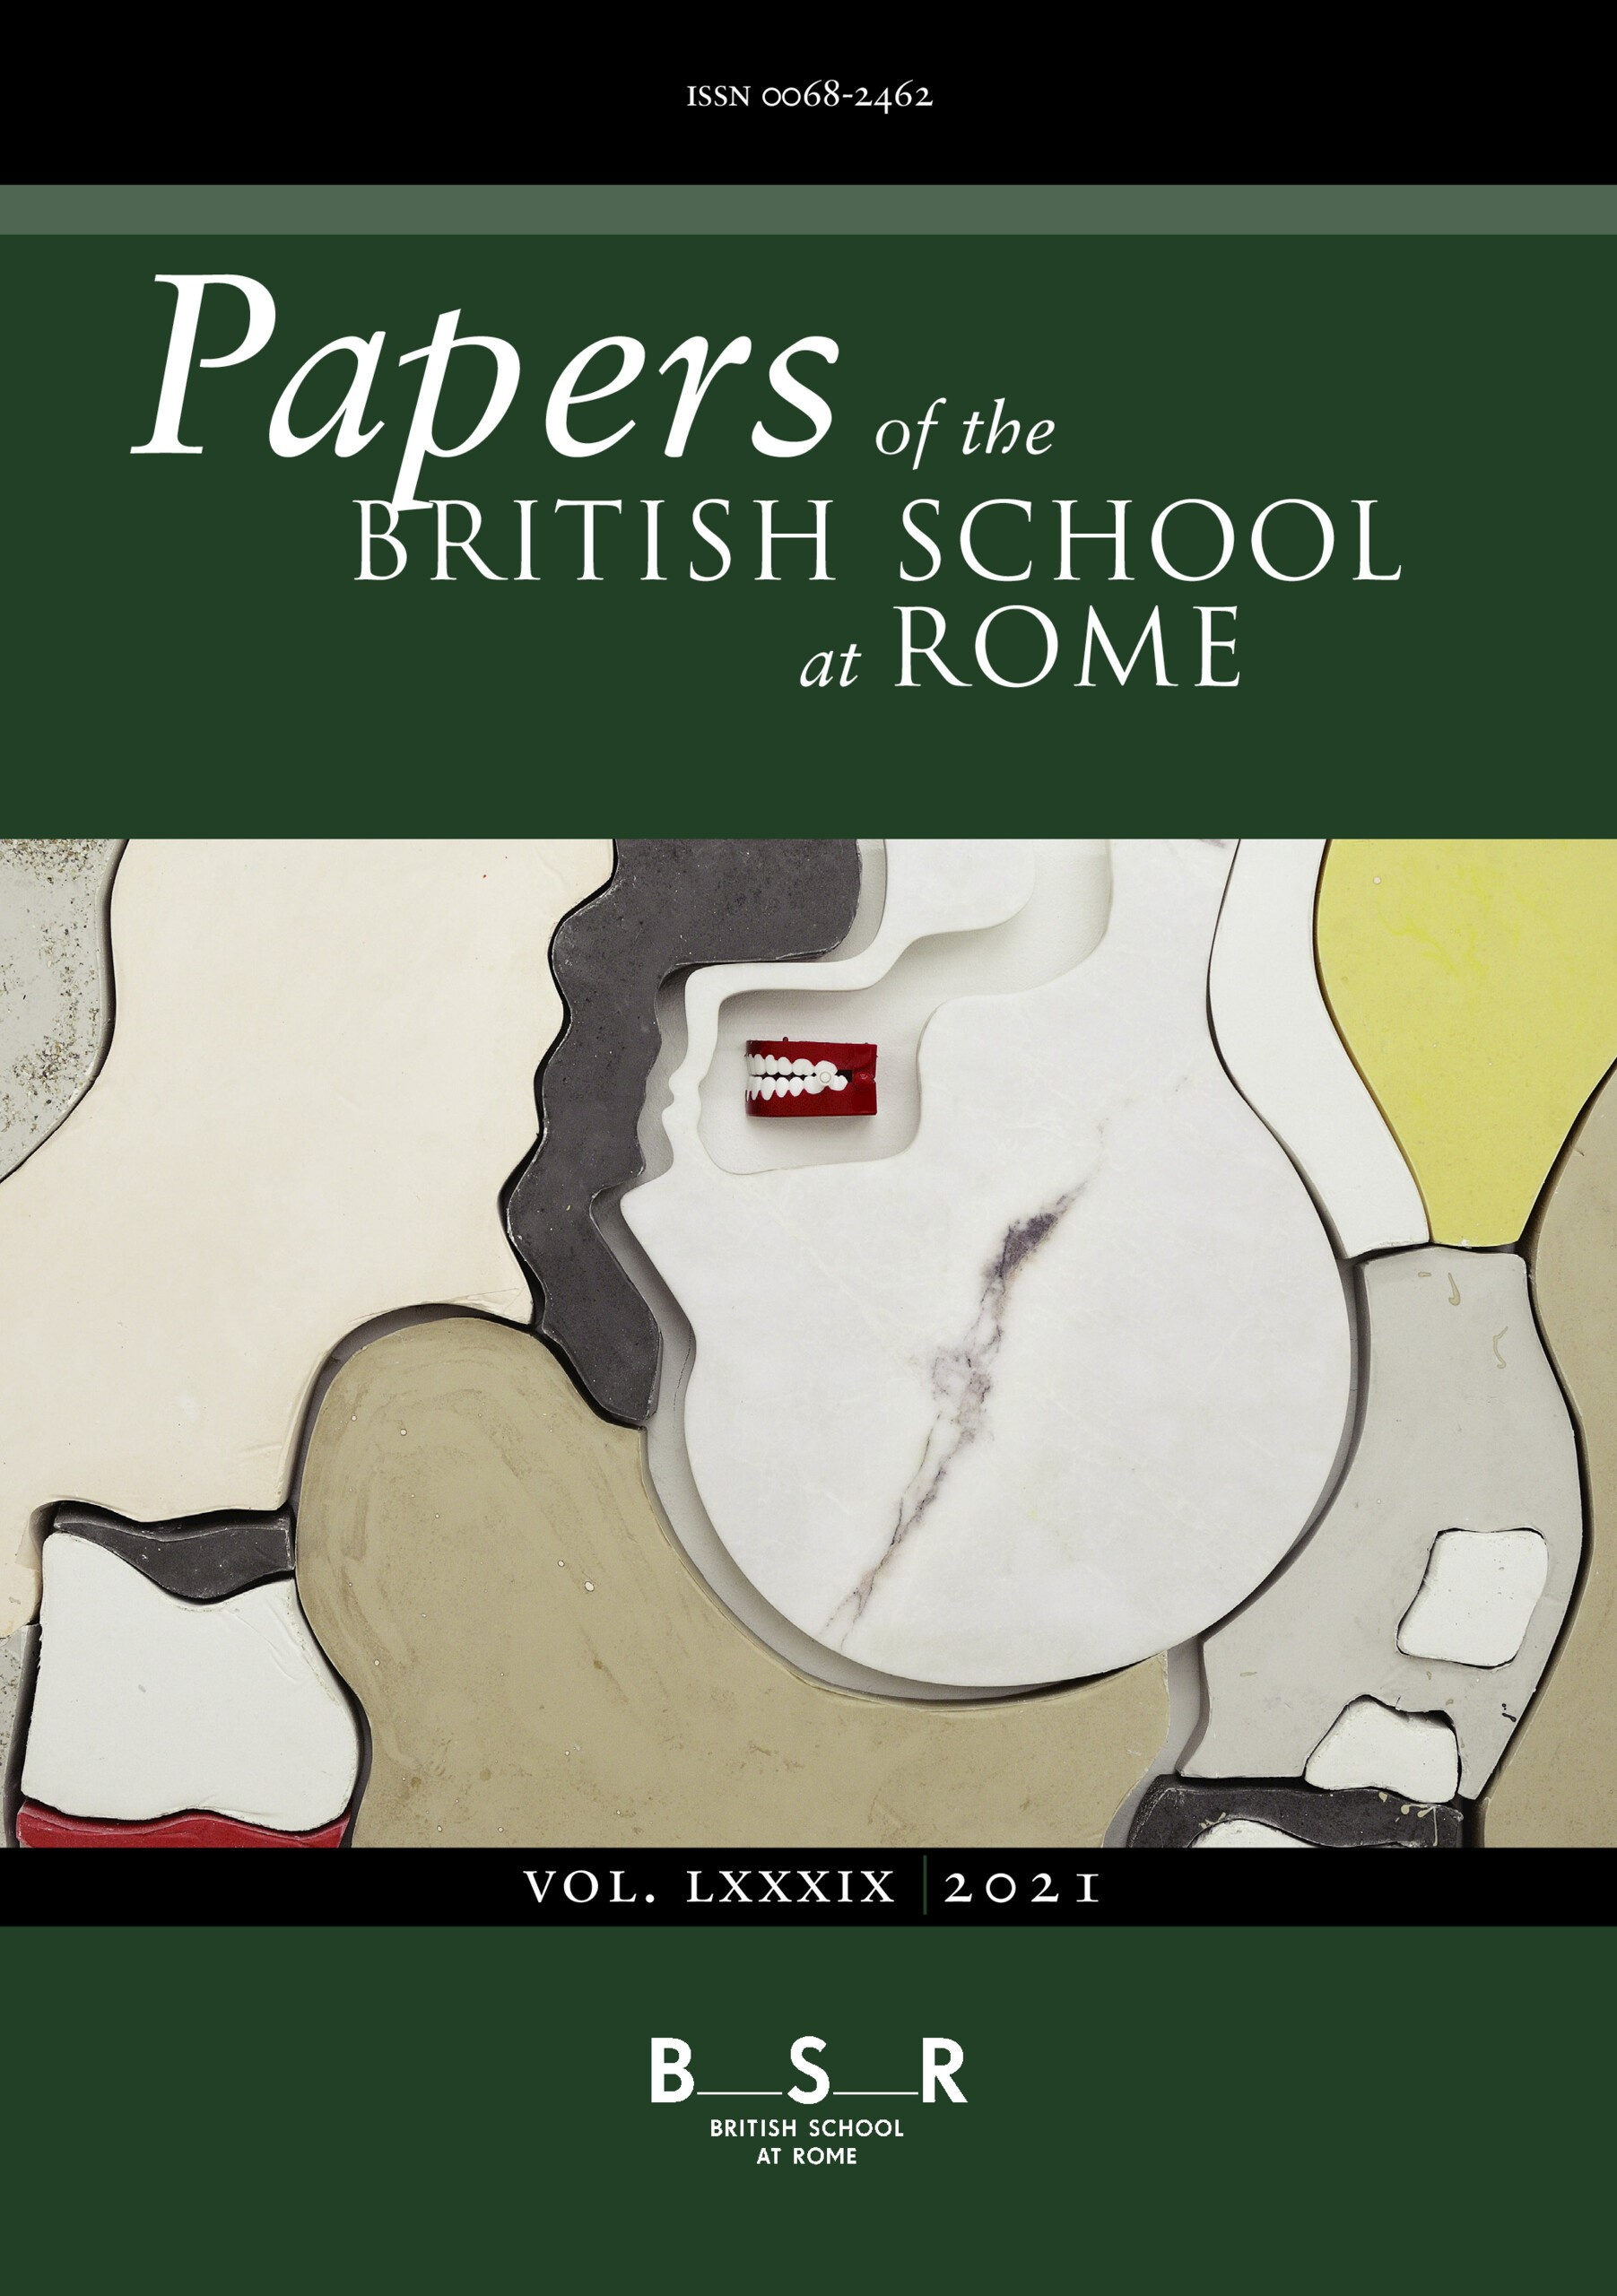 Papers of the British School at Rome